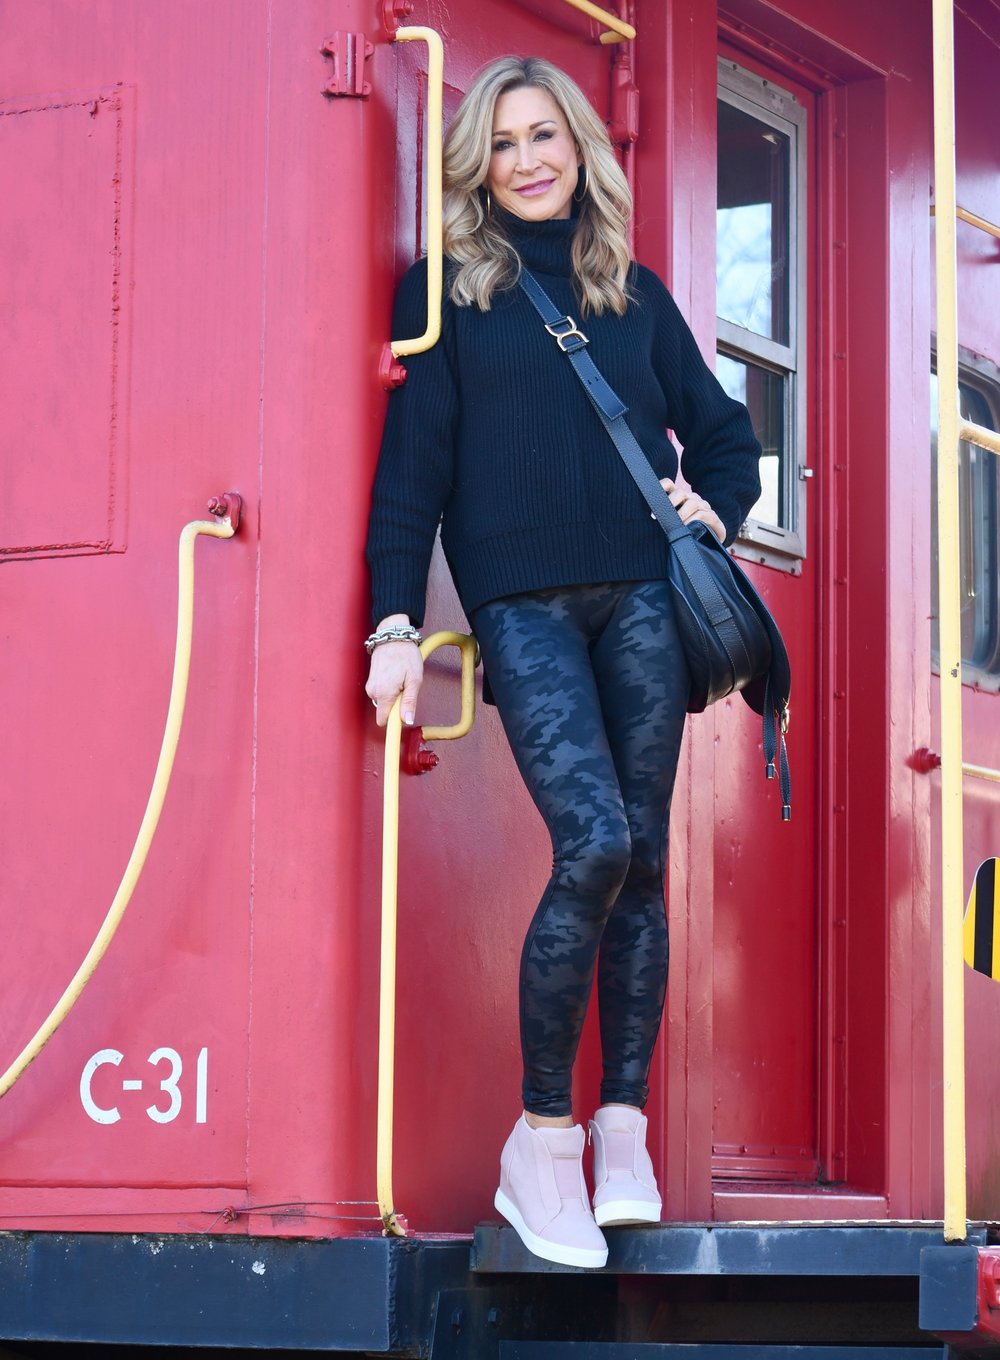 Spanx Camo leggings with Vici sneakers and Chloe Bat